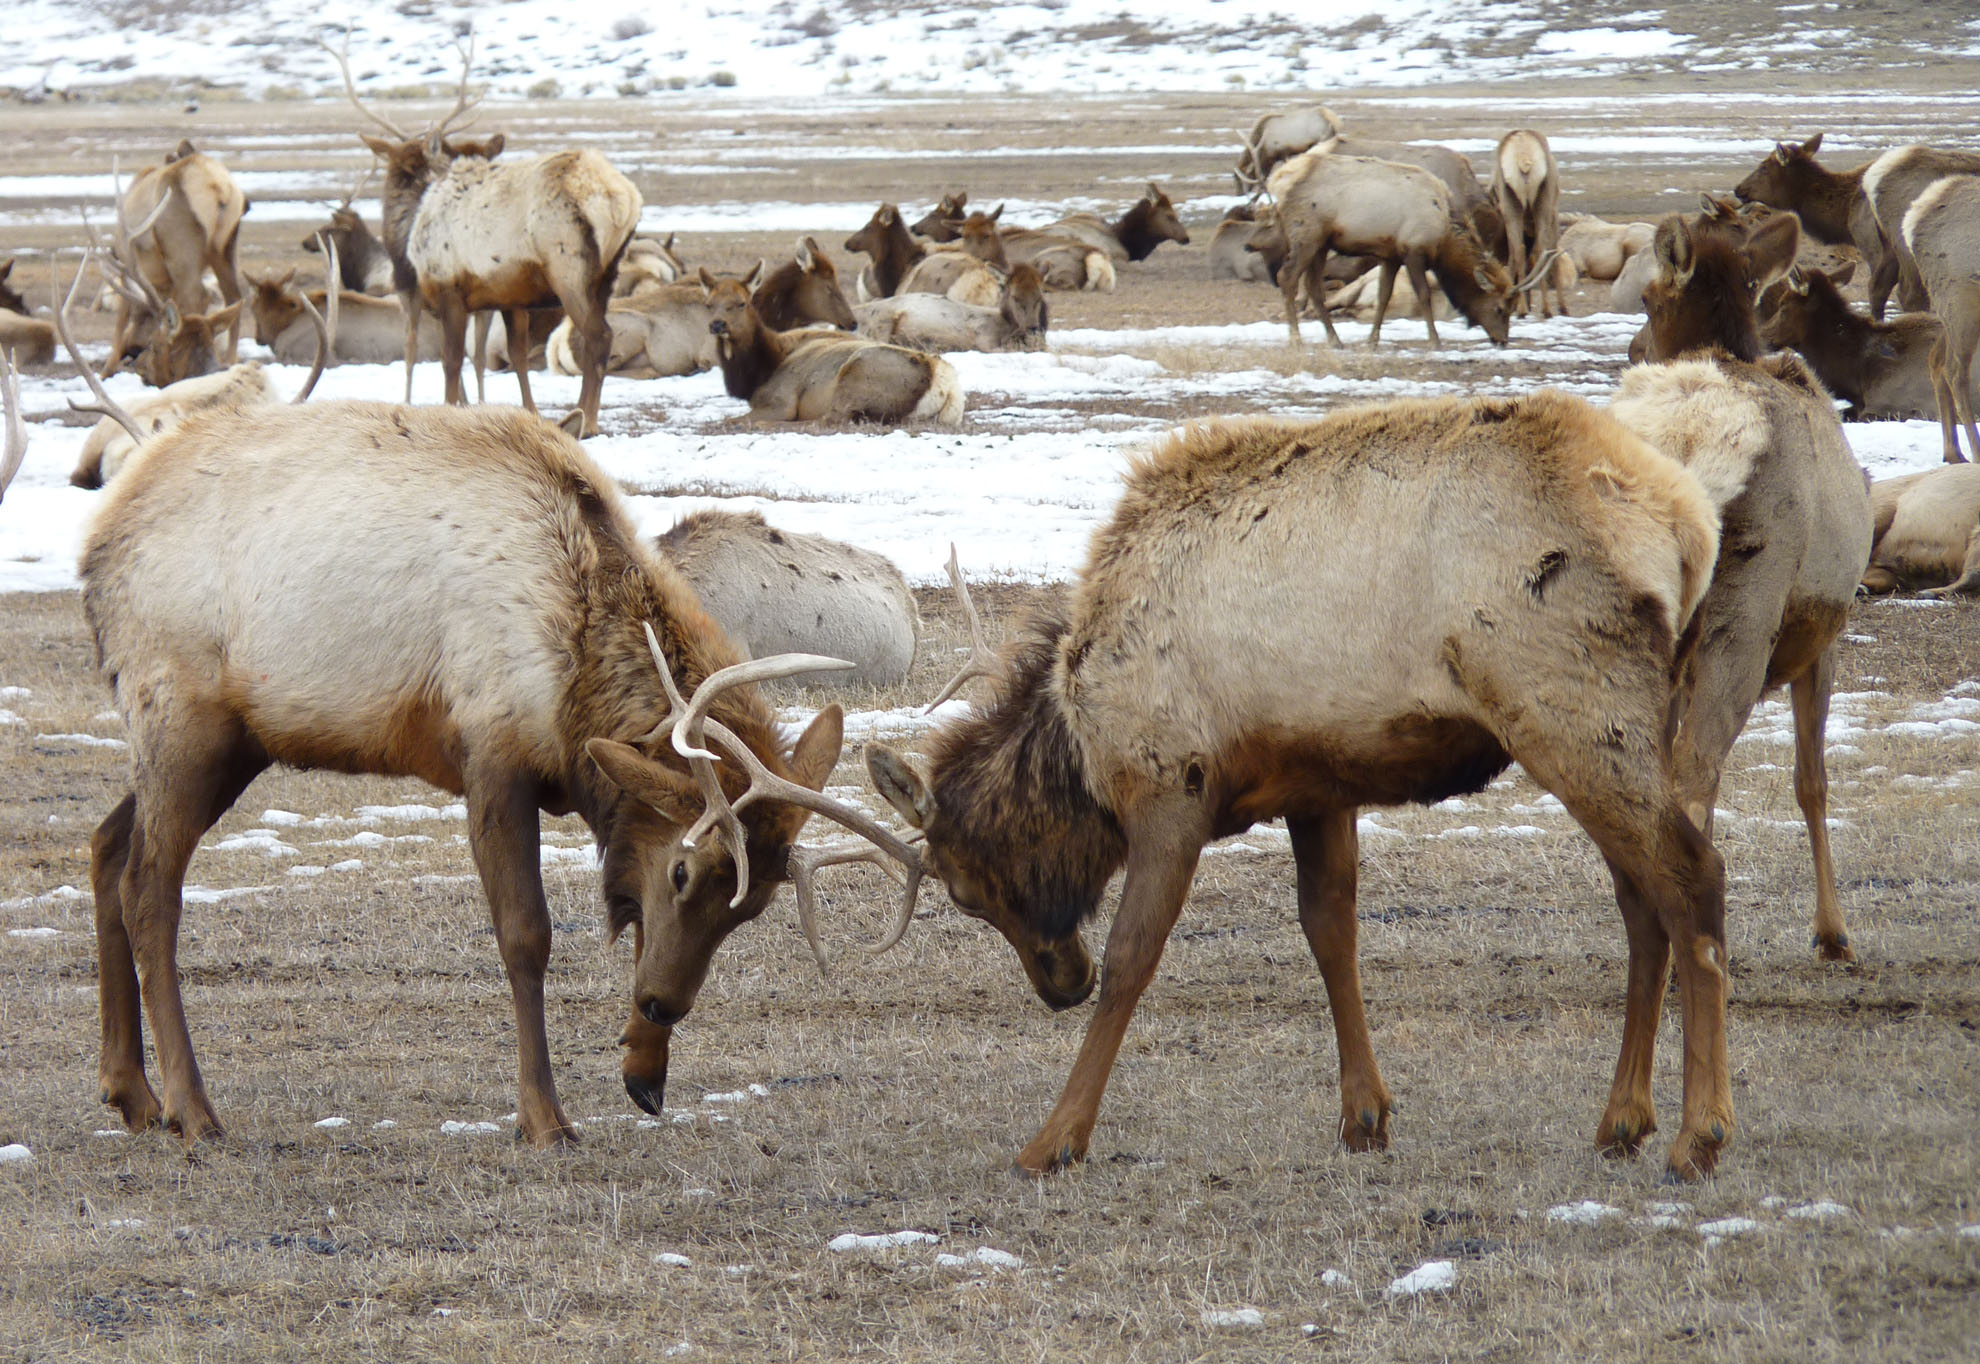 Twelve Days of Christmas, National Elk Refuge Style